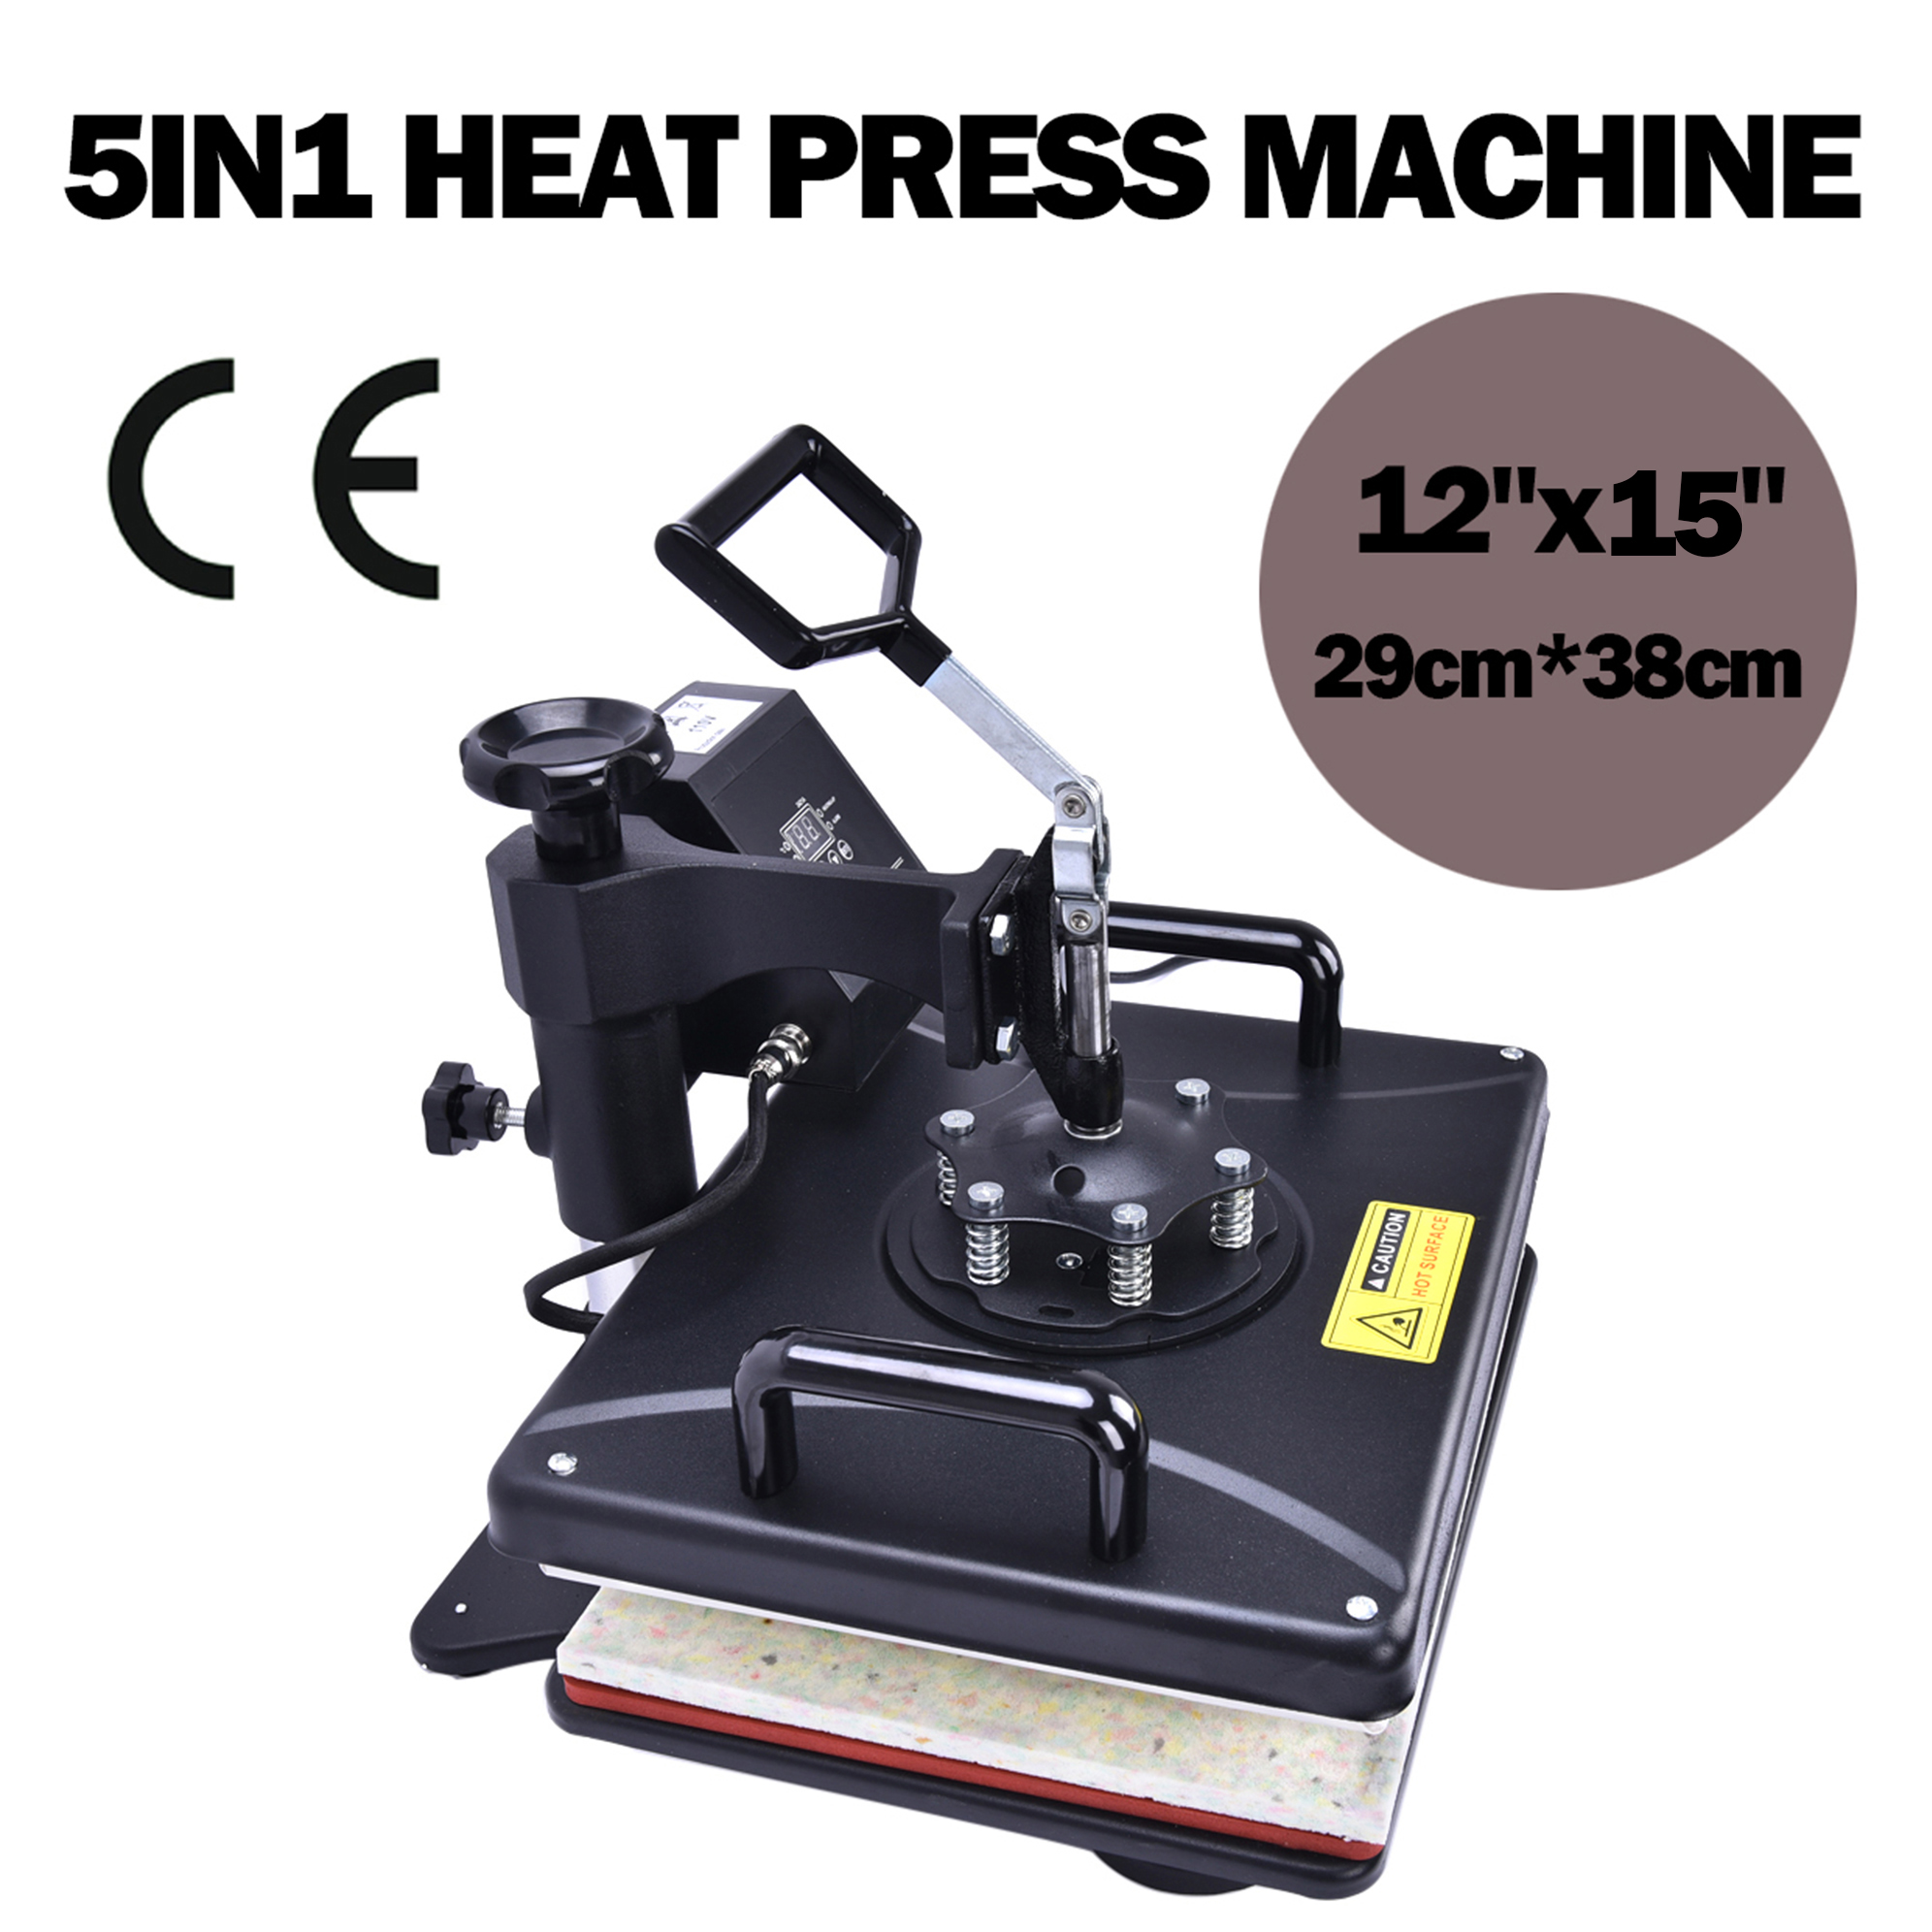 5 in 1 Swing Heat Press Machine Digital T-shirt Heat Transfer 12